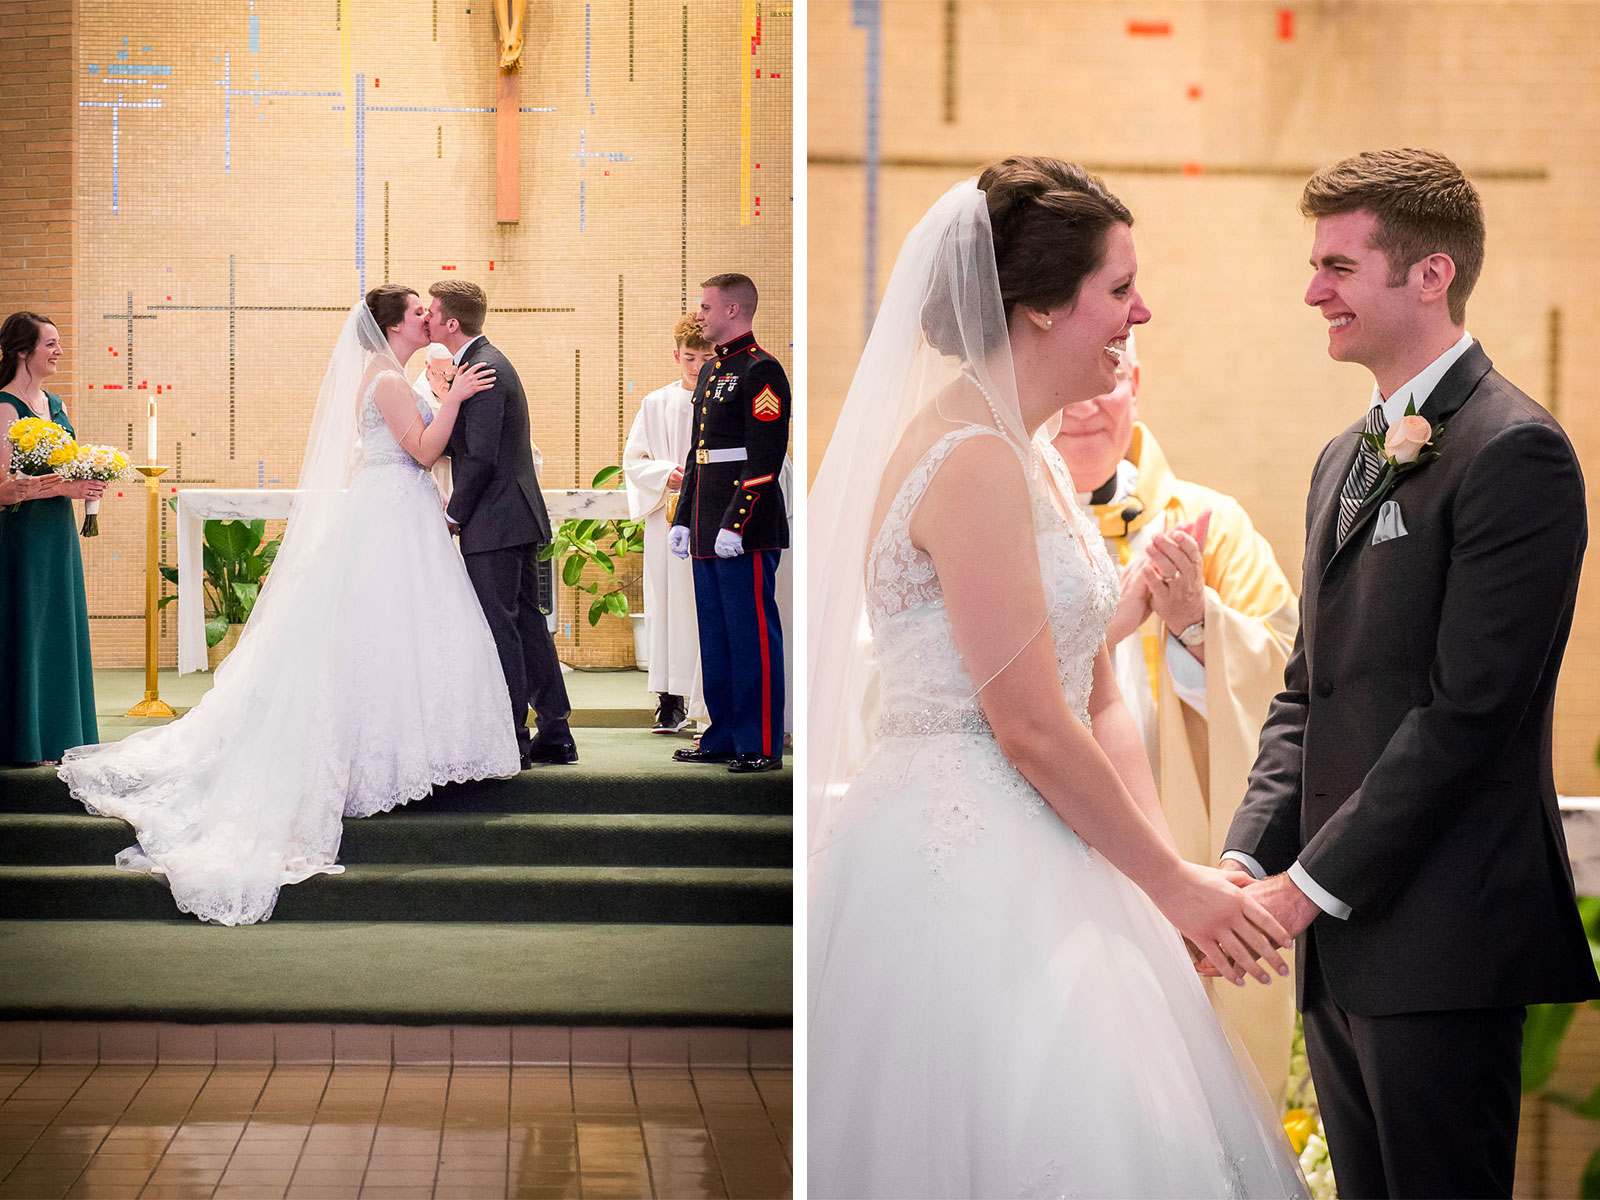 Eric_and_Christy_Photography_Blog_Wedding_Kelly_Michael-13-14